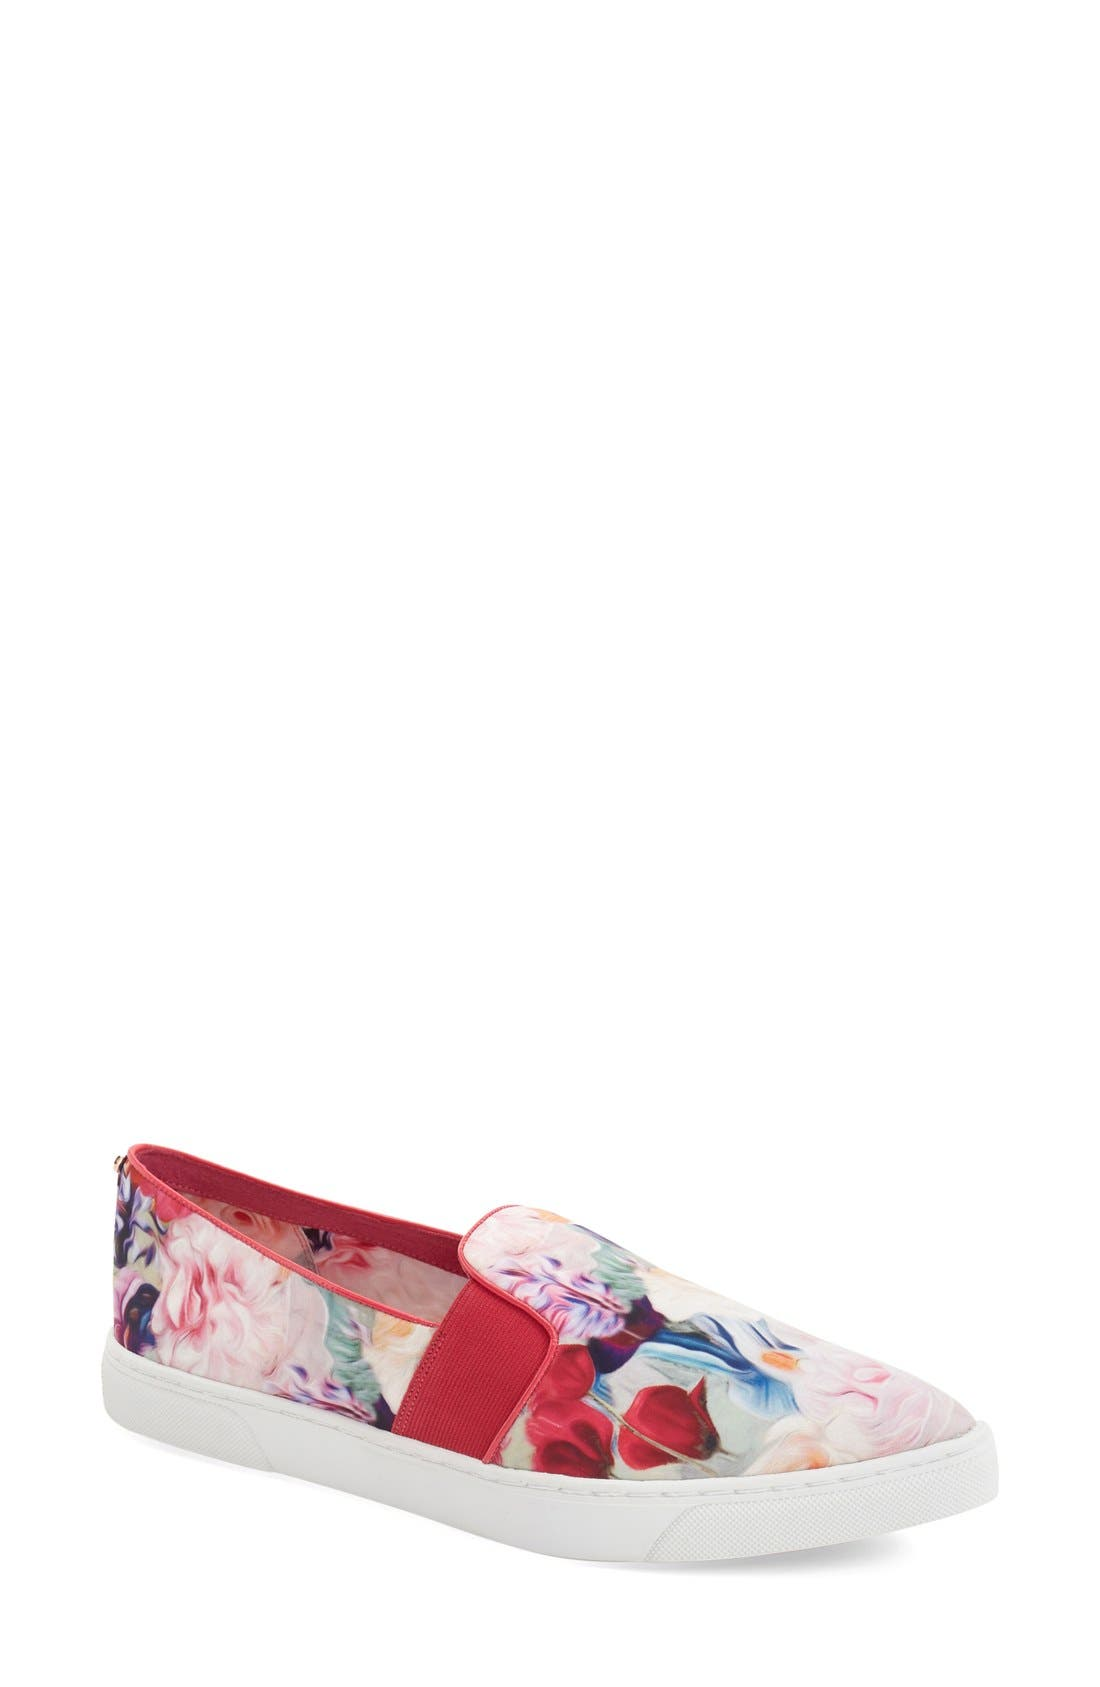 Alternate Image 1 Selected - Ted Baker London 'Thfia' Floral Pointy Toe Slip-On Sneaker (Women)